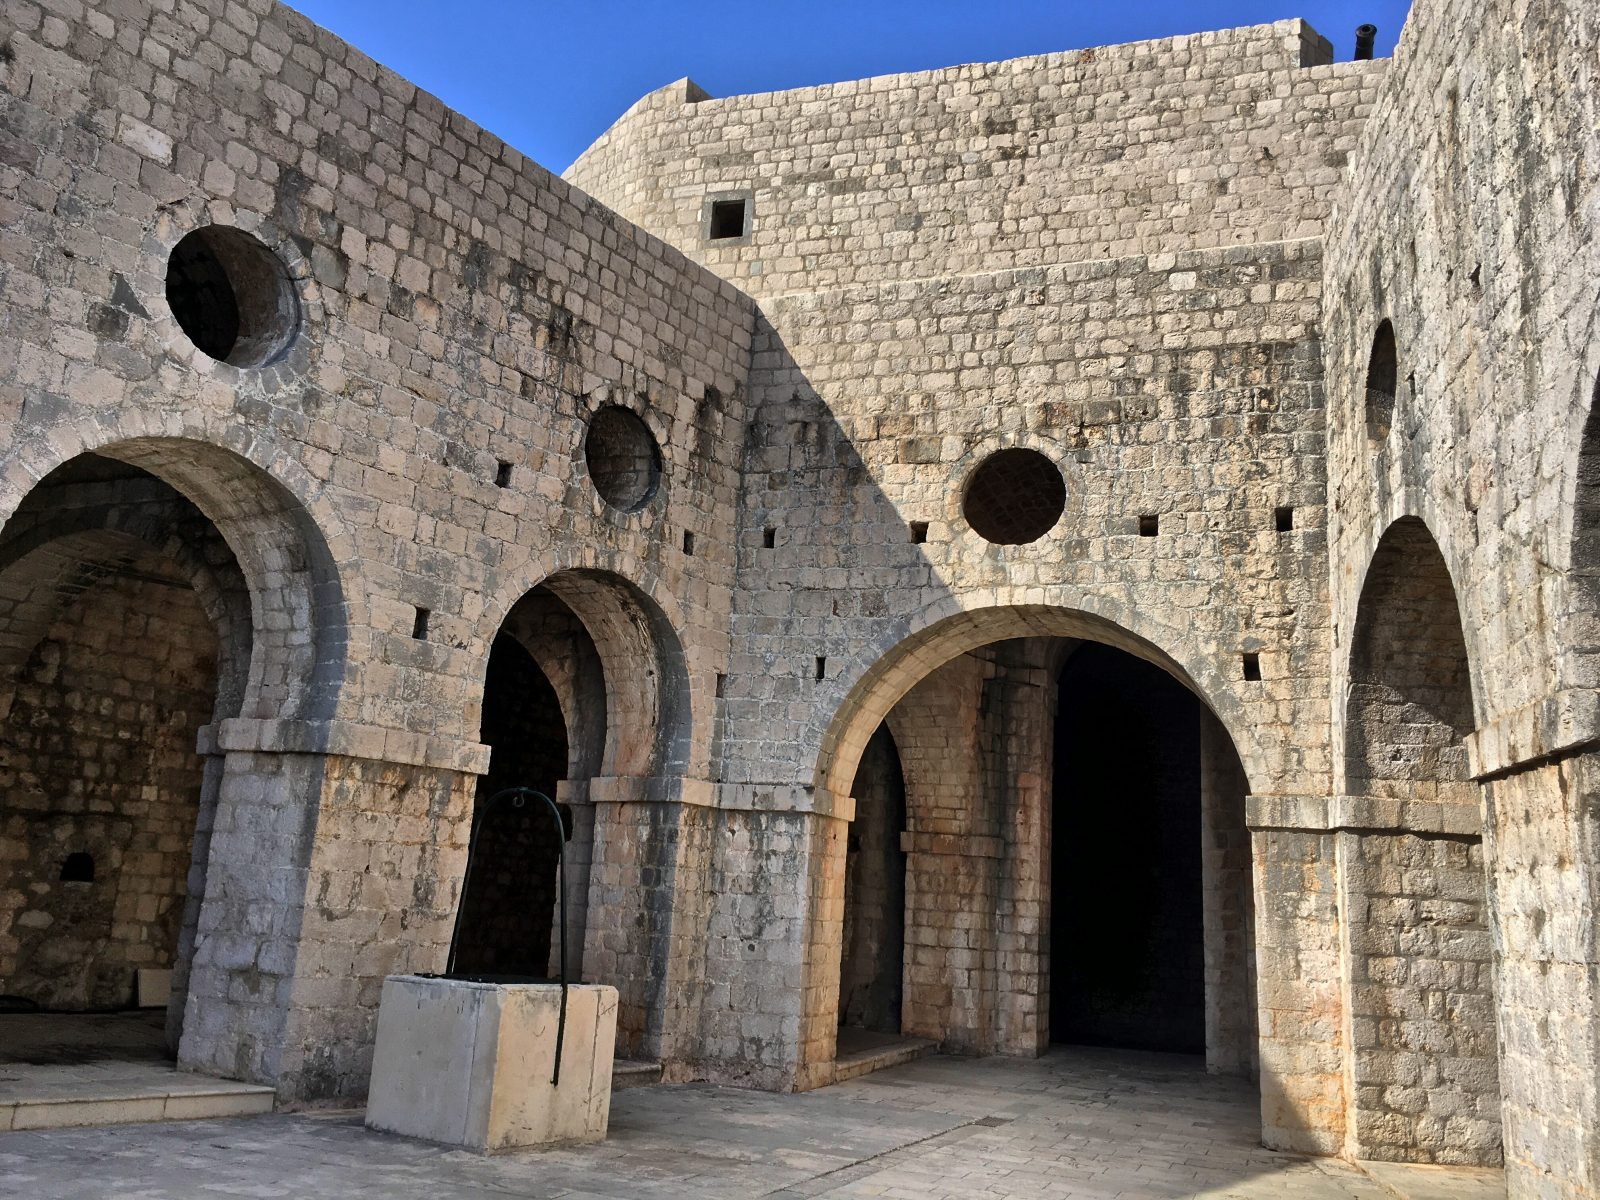 10 Game of Thrones Filming Locations in Dubrovnik